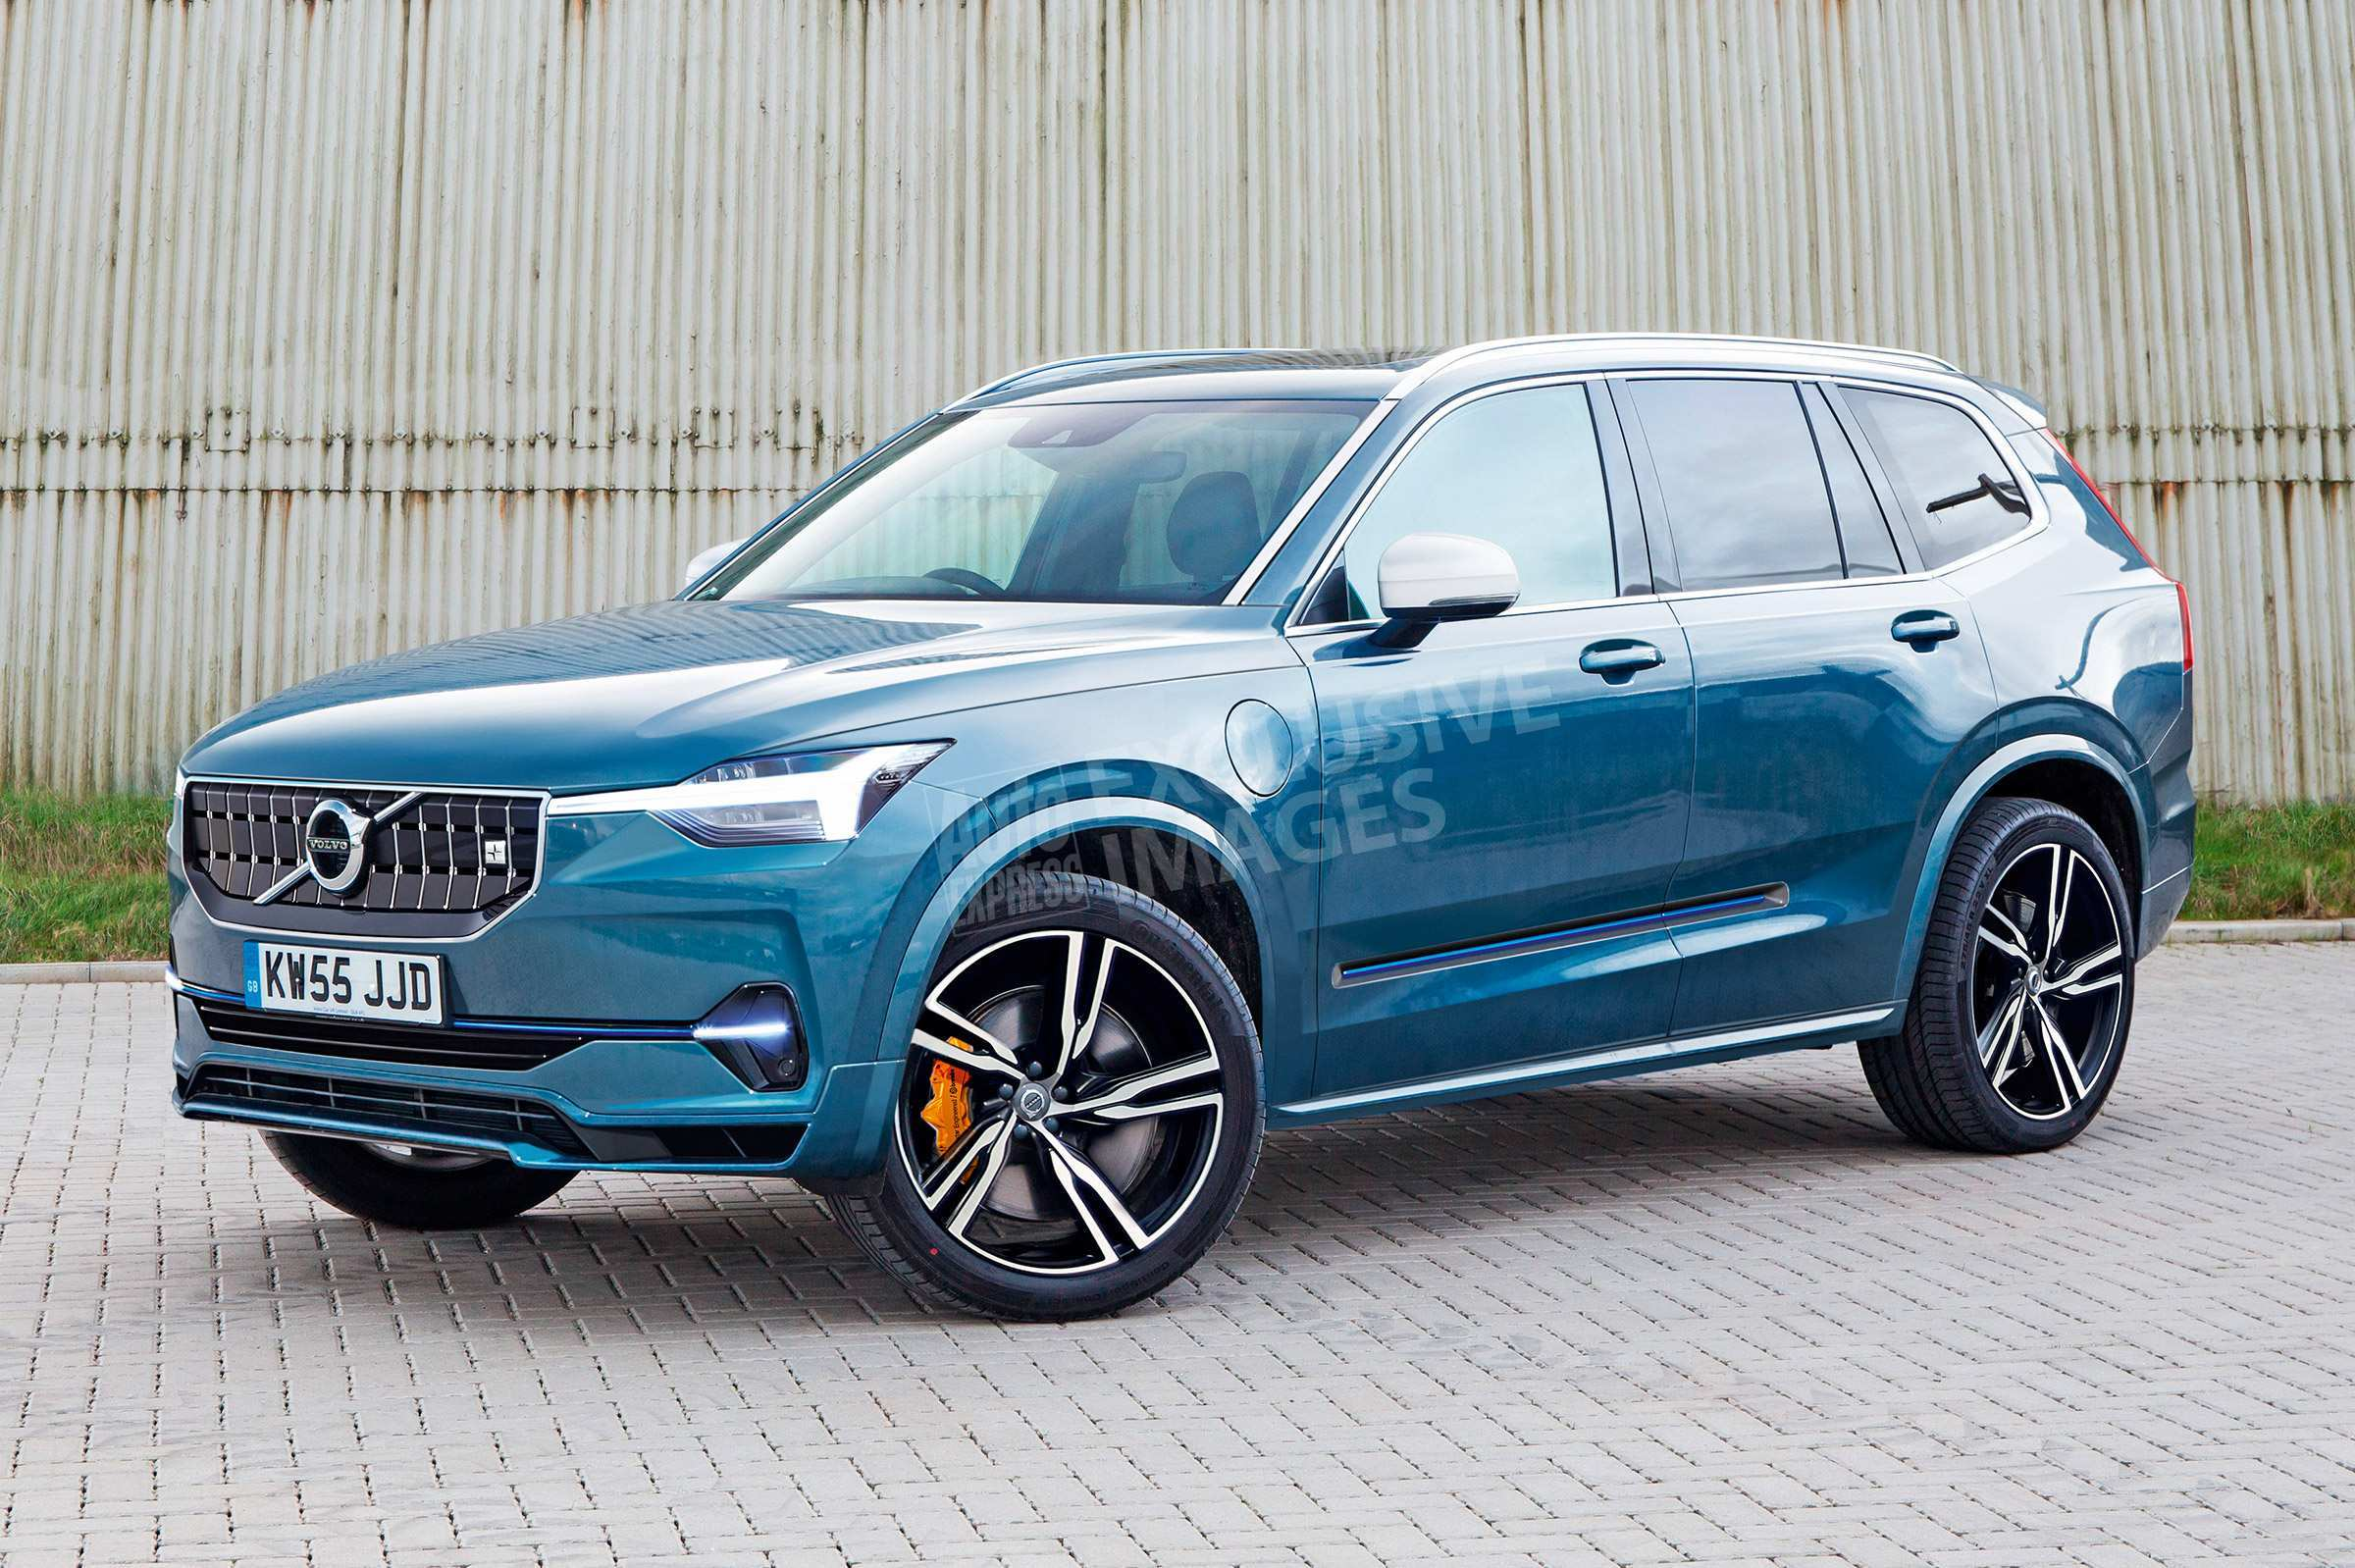 83 New Volvo Xc90 Facelift 2019 Engine